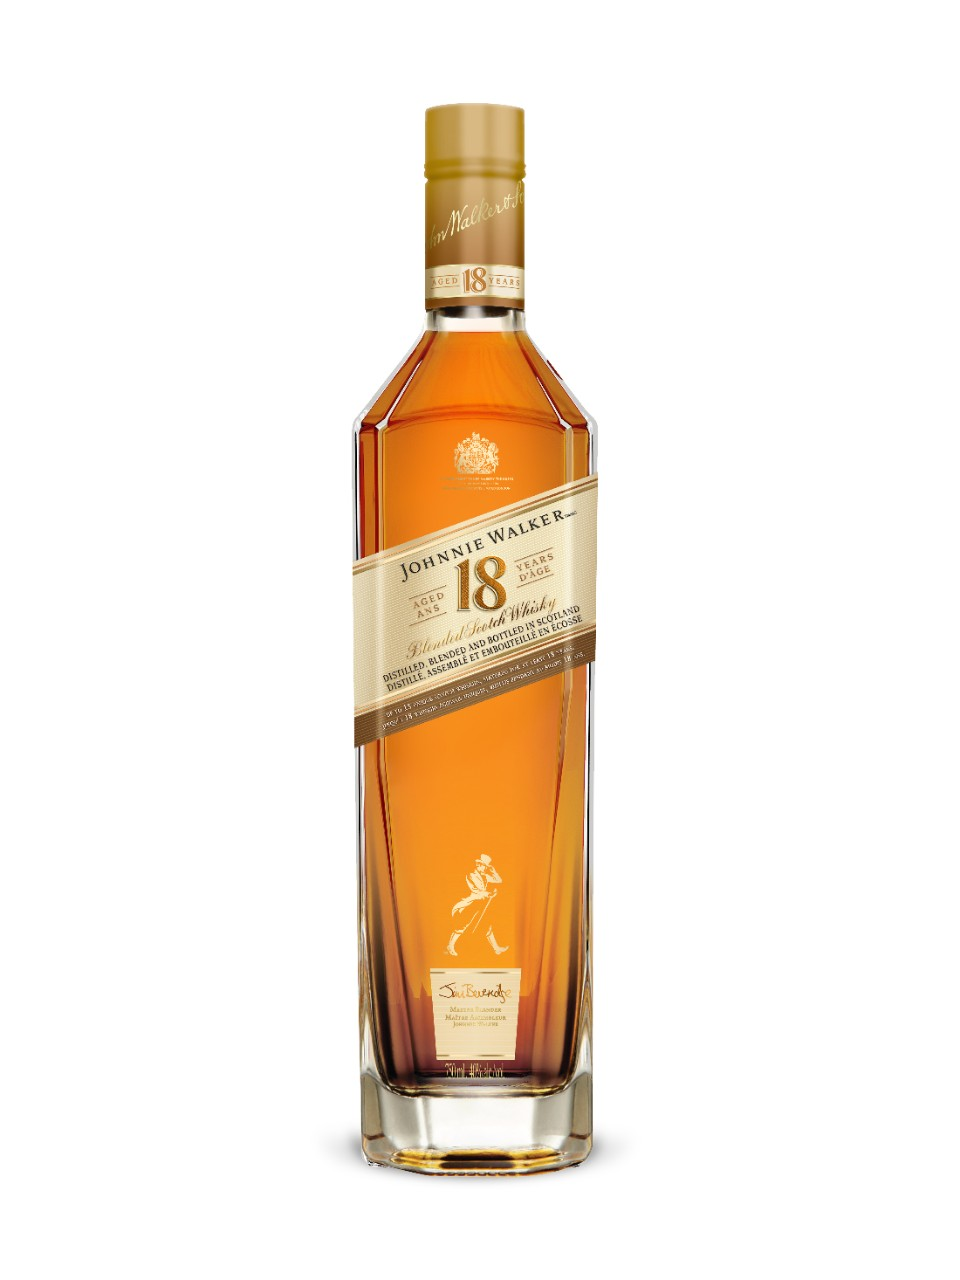 Johnnie Walker 18 Year Old Scotch Whisky Lcbo